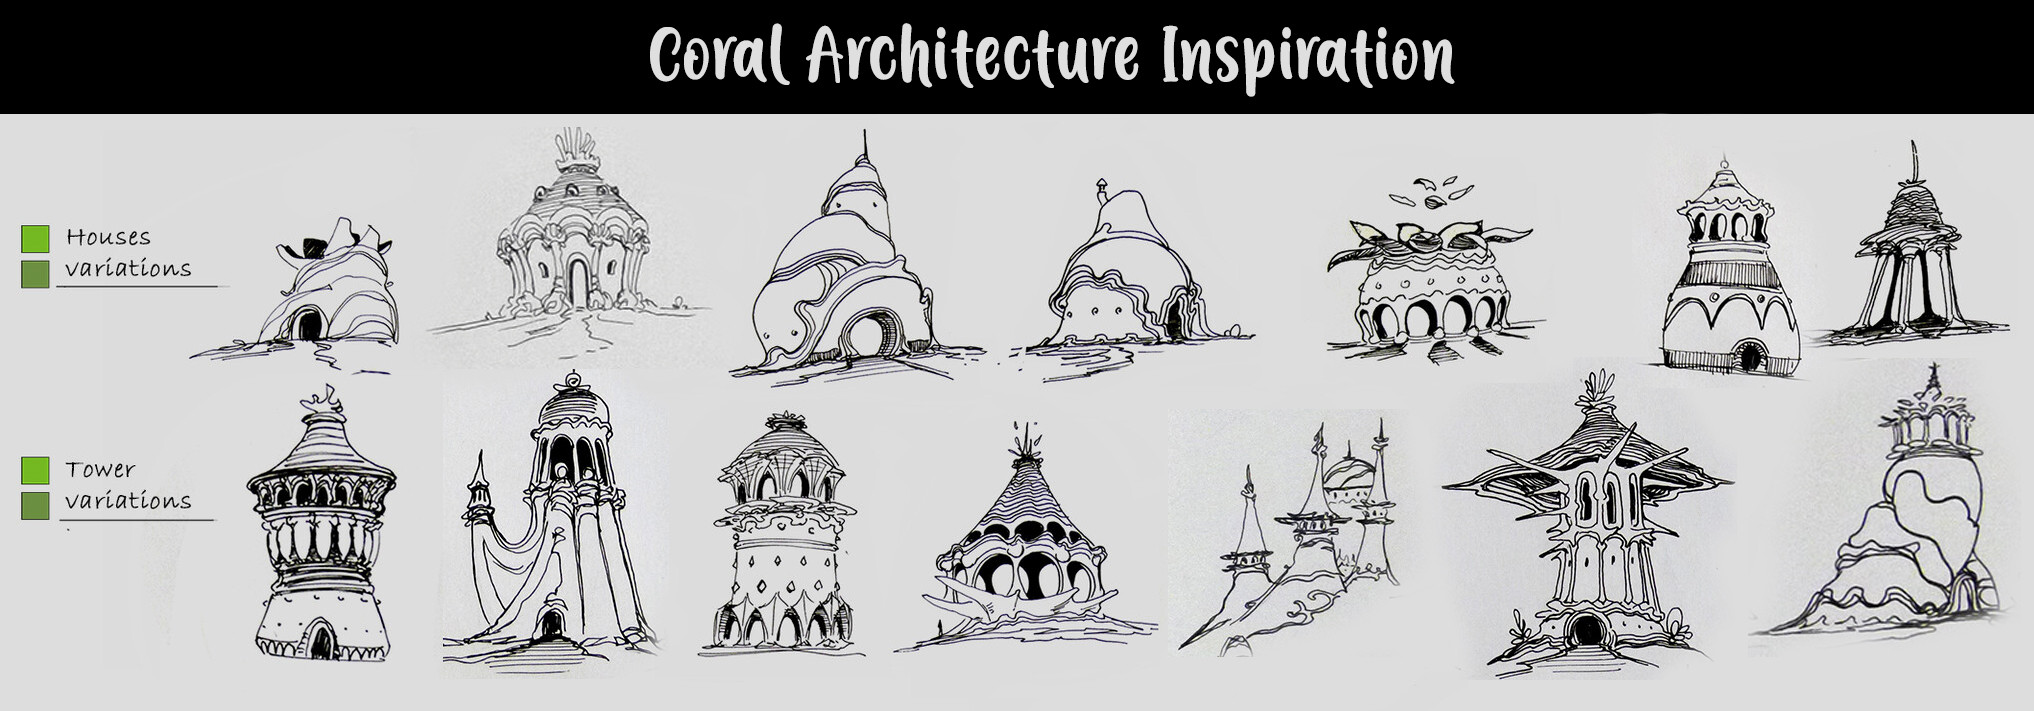 Architecture sketches made by Victor Fritsch. I decided to use these as inspiration for my buildings instead of the ones in his final concept painting